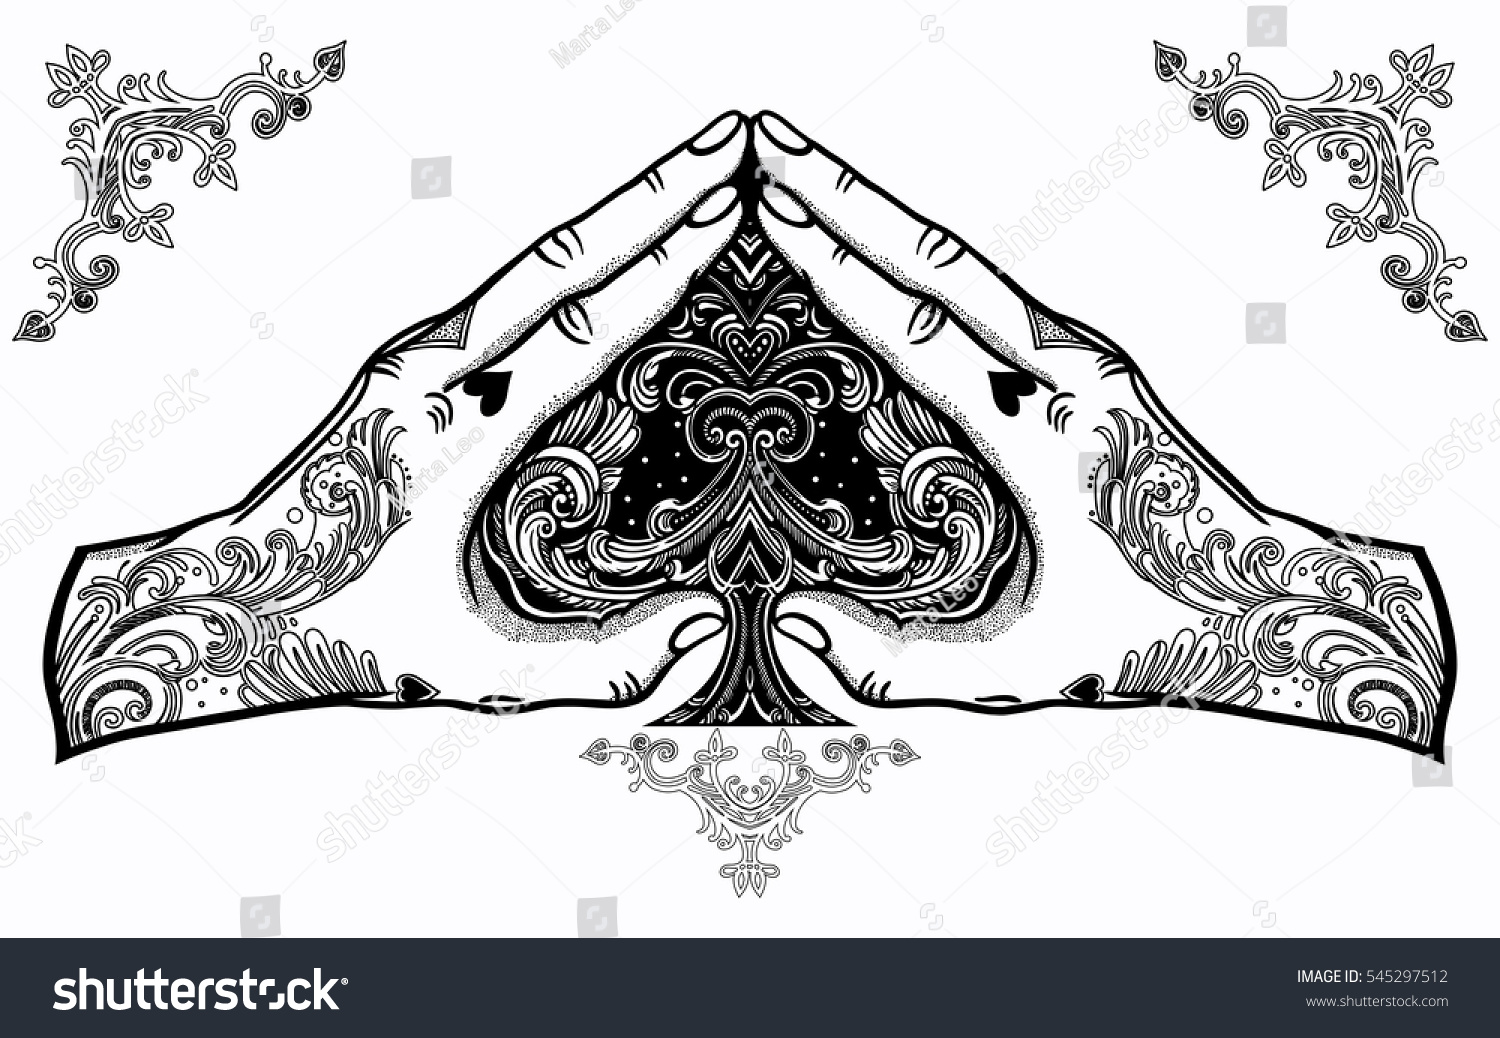 Heart Shape Hand Gesture Ace Spades Stock Vector Royalty Free